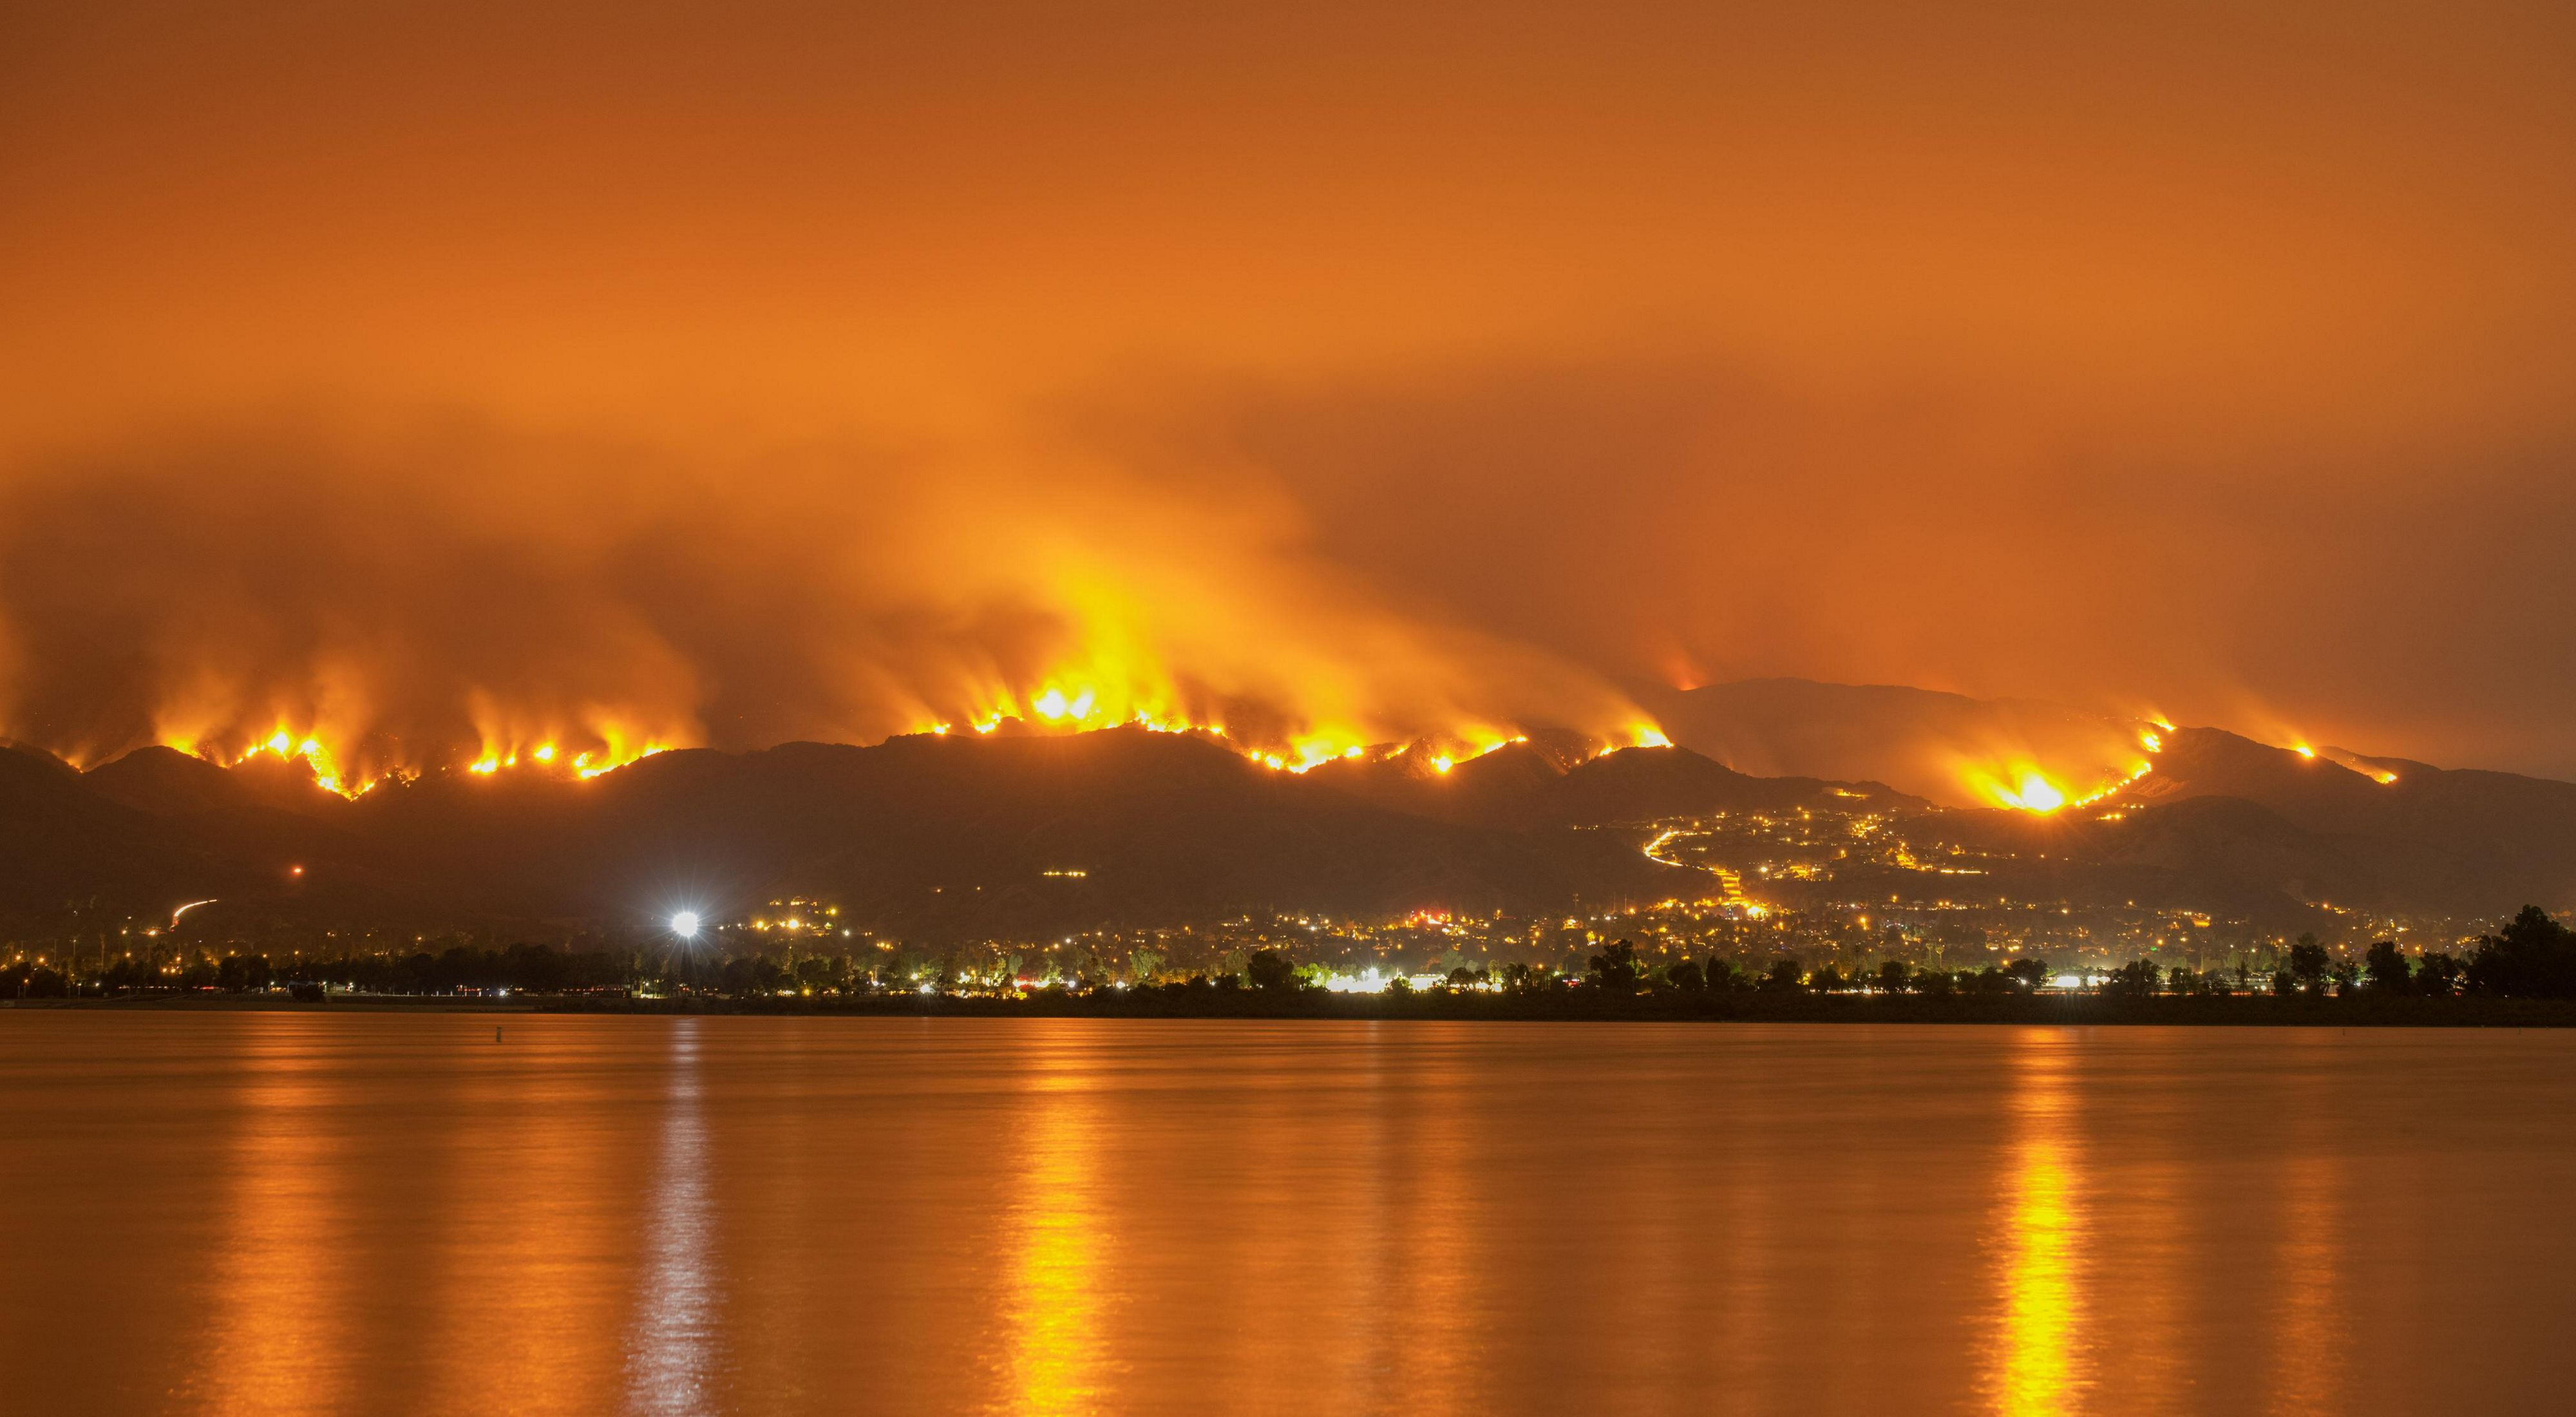 One of the 2018 California wildfires. A glowing orange sky with water in the foreground and flames rising over hills in the background.